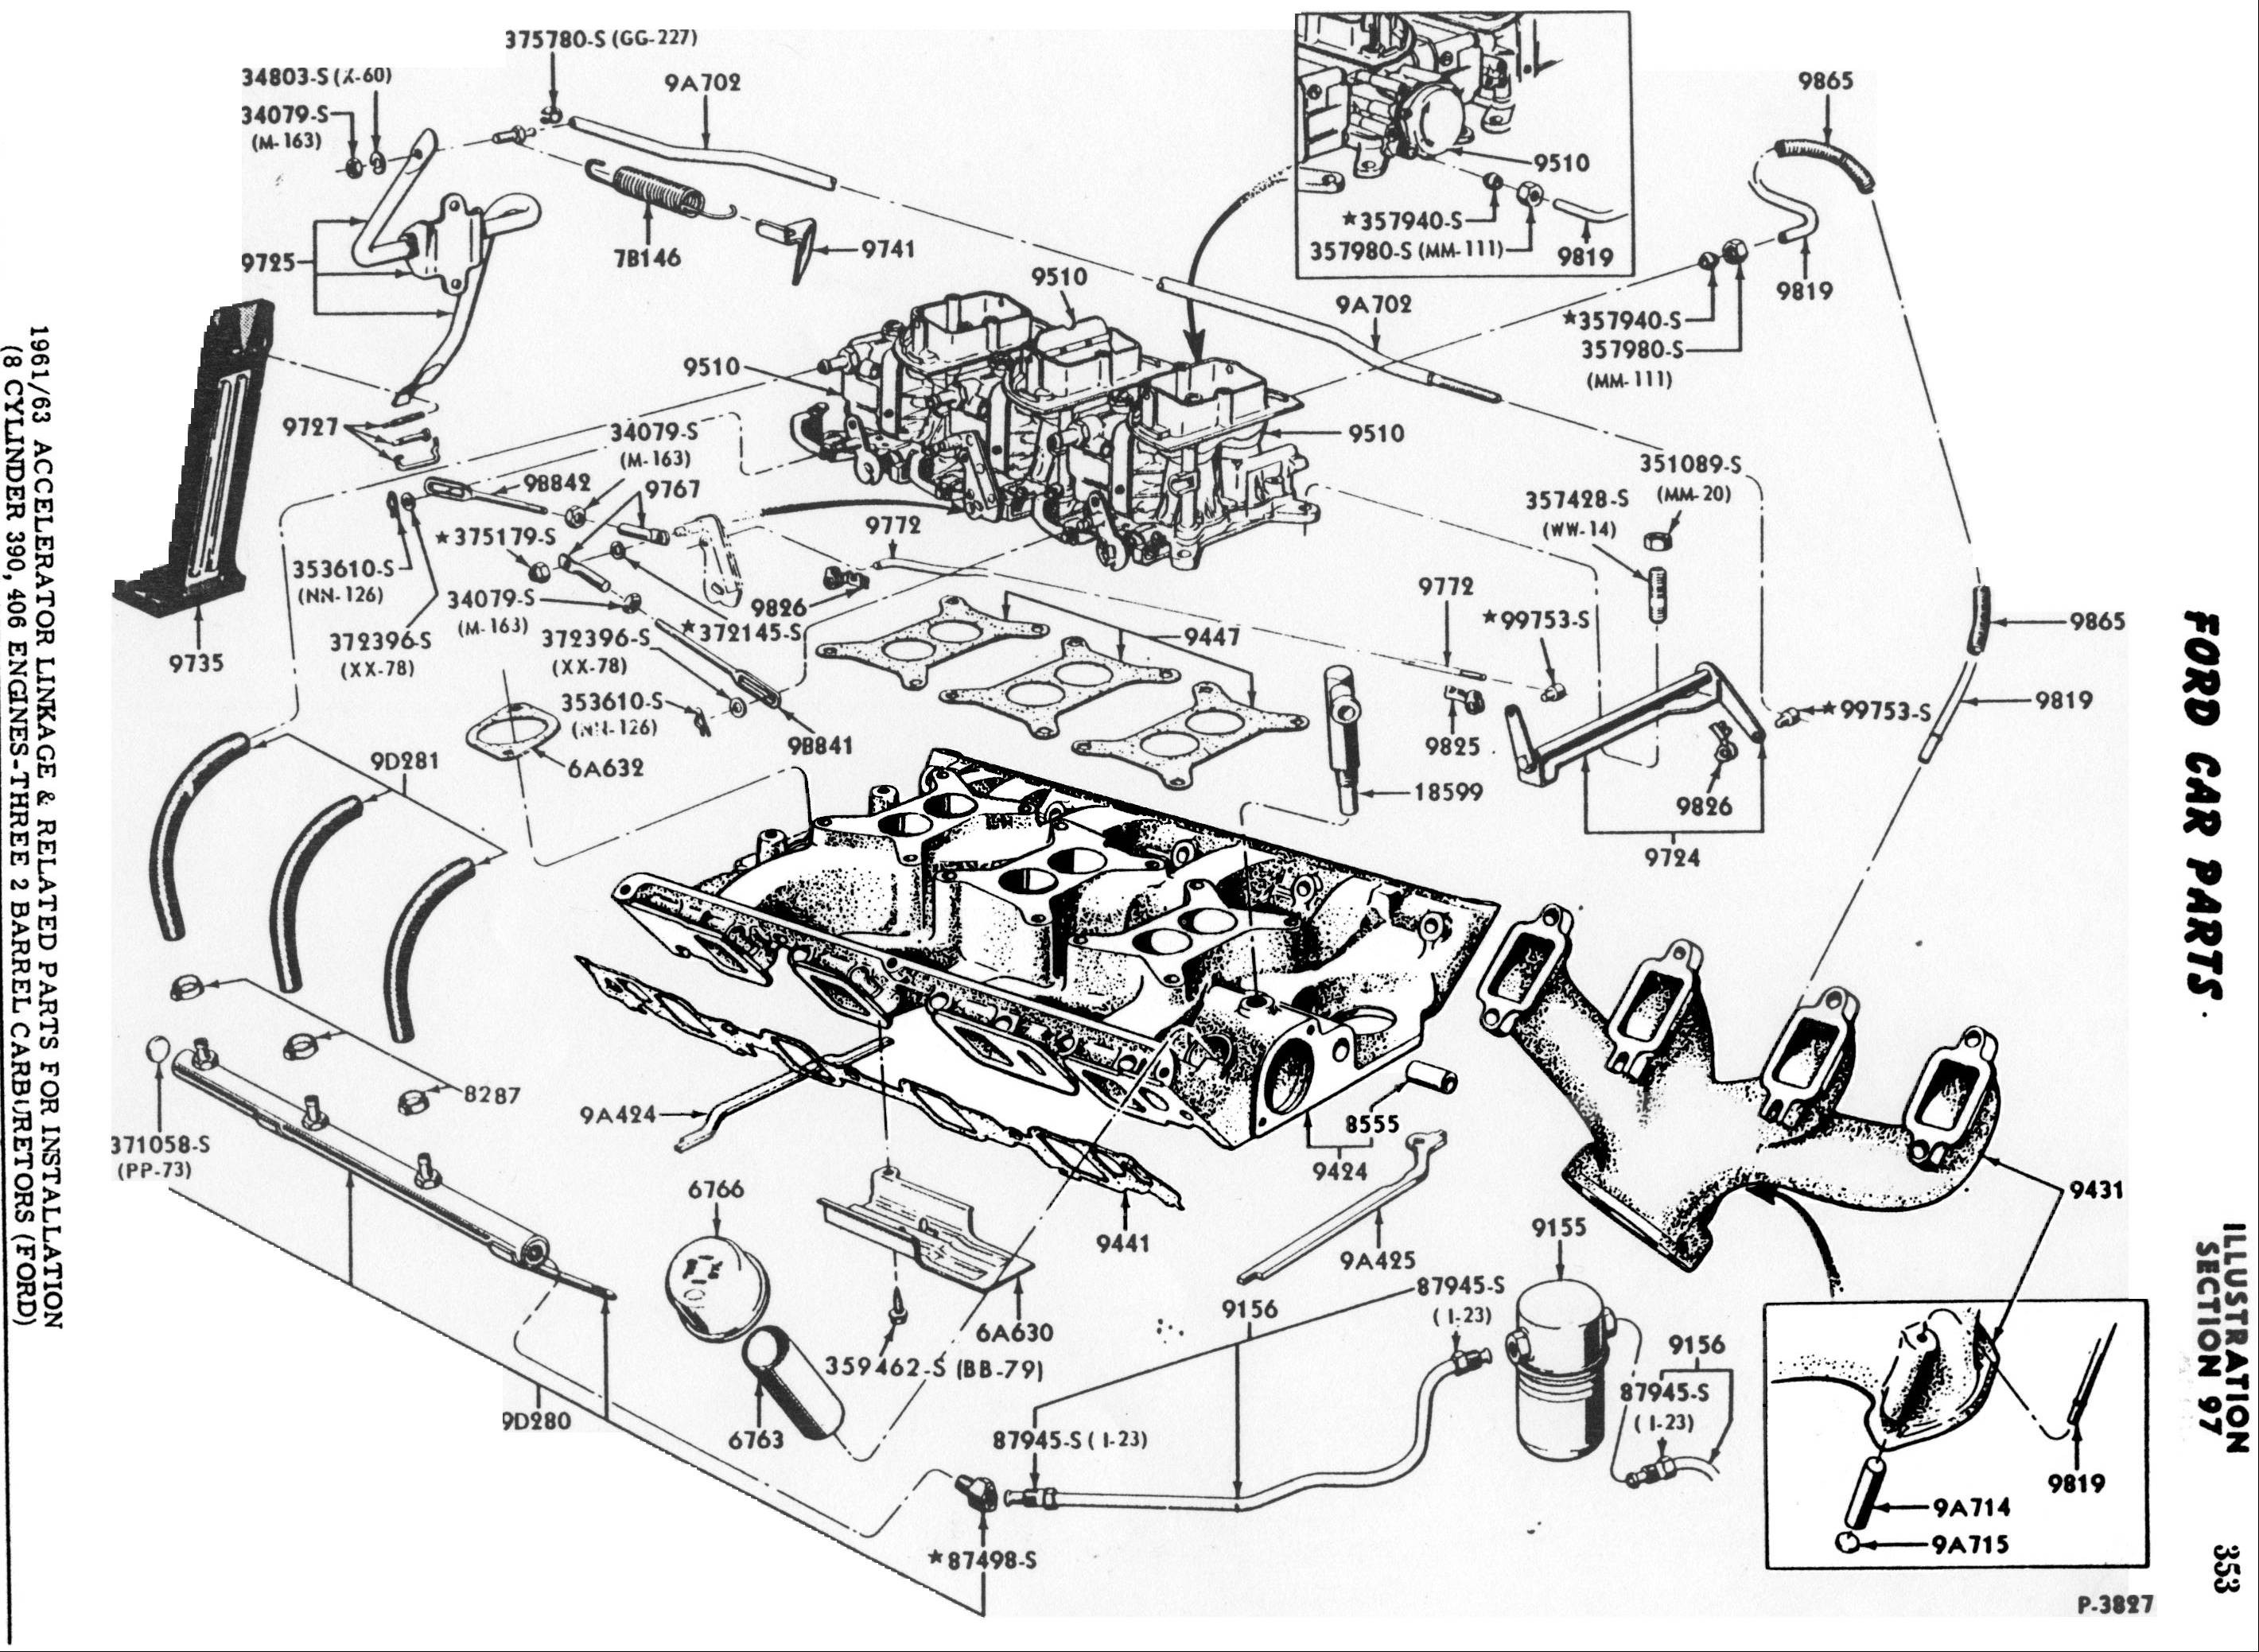 Wiring Diagram Ford 360 Trusted 460 Plug Wire 390 Engine Explore Schematic U2022 1973 Truck